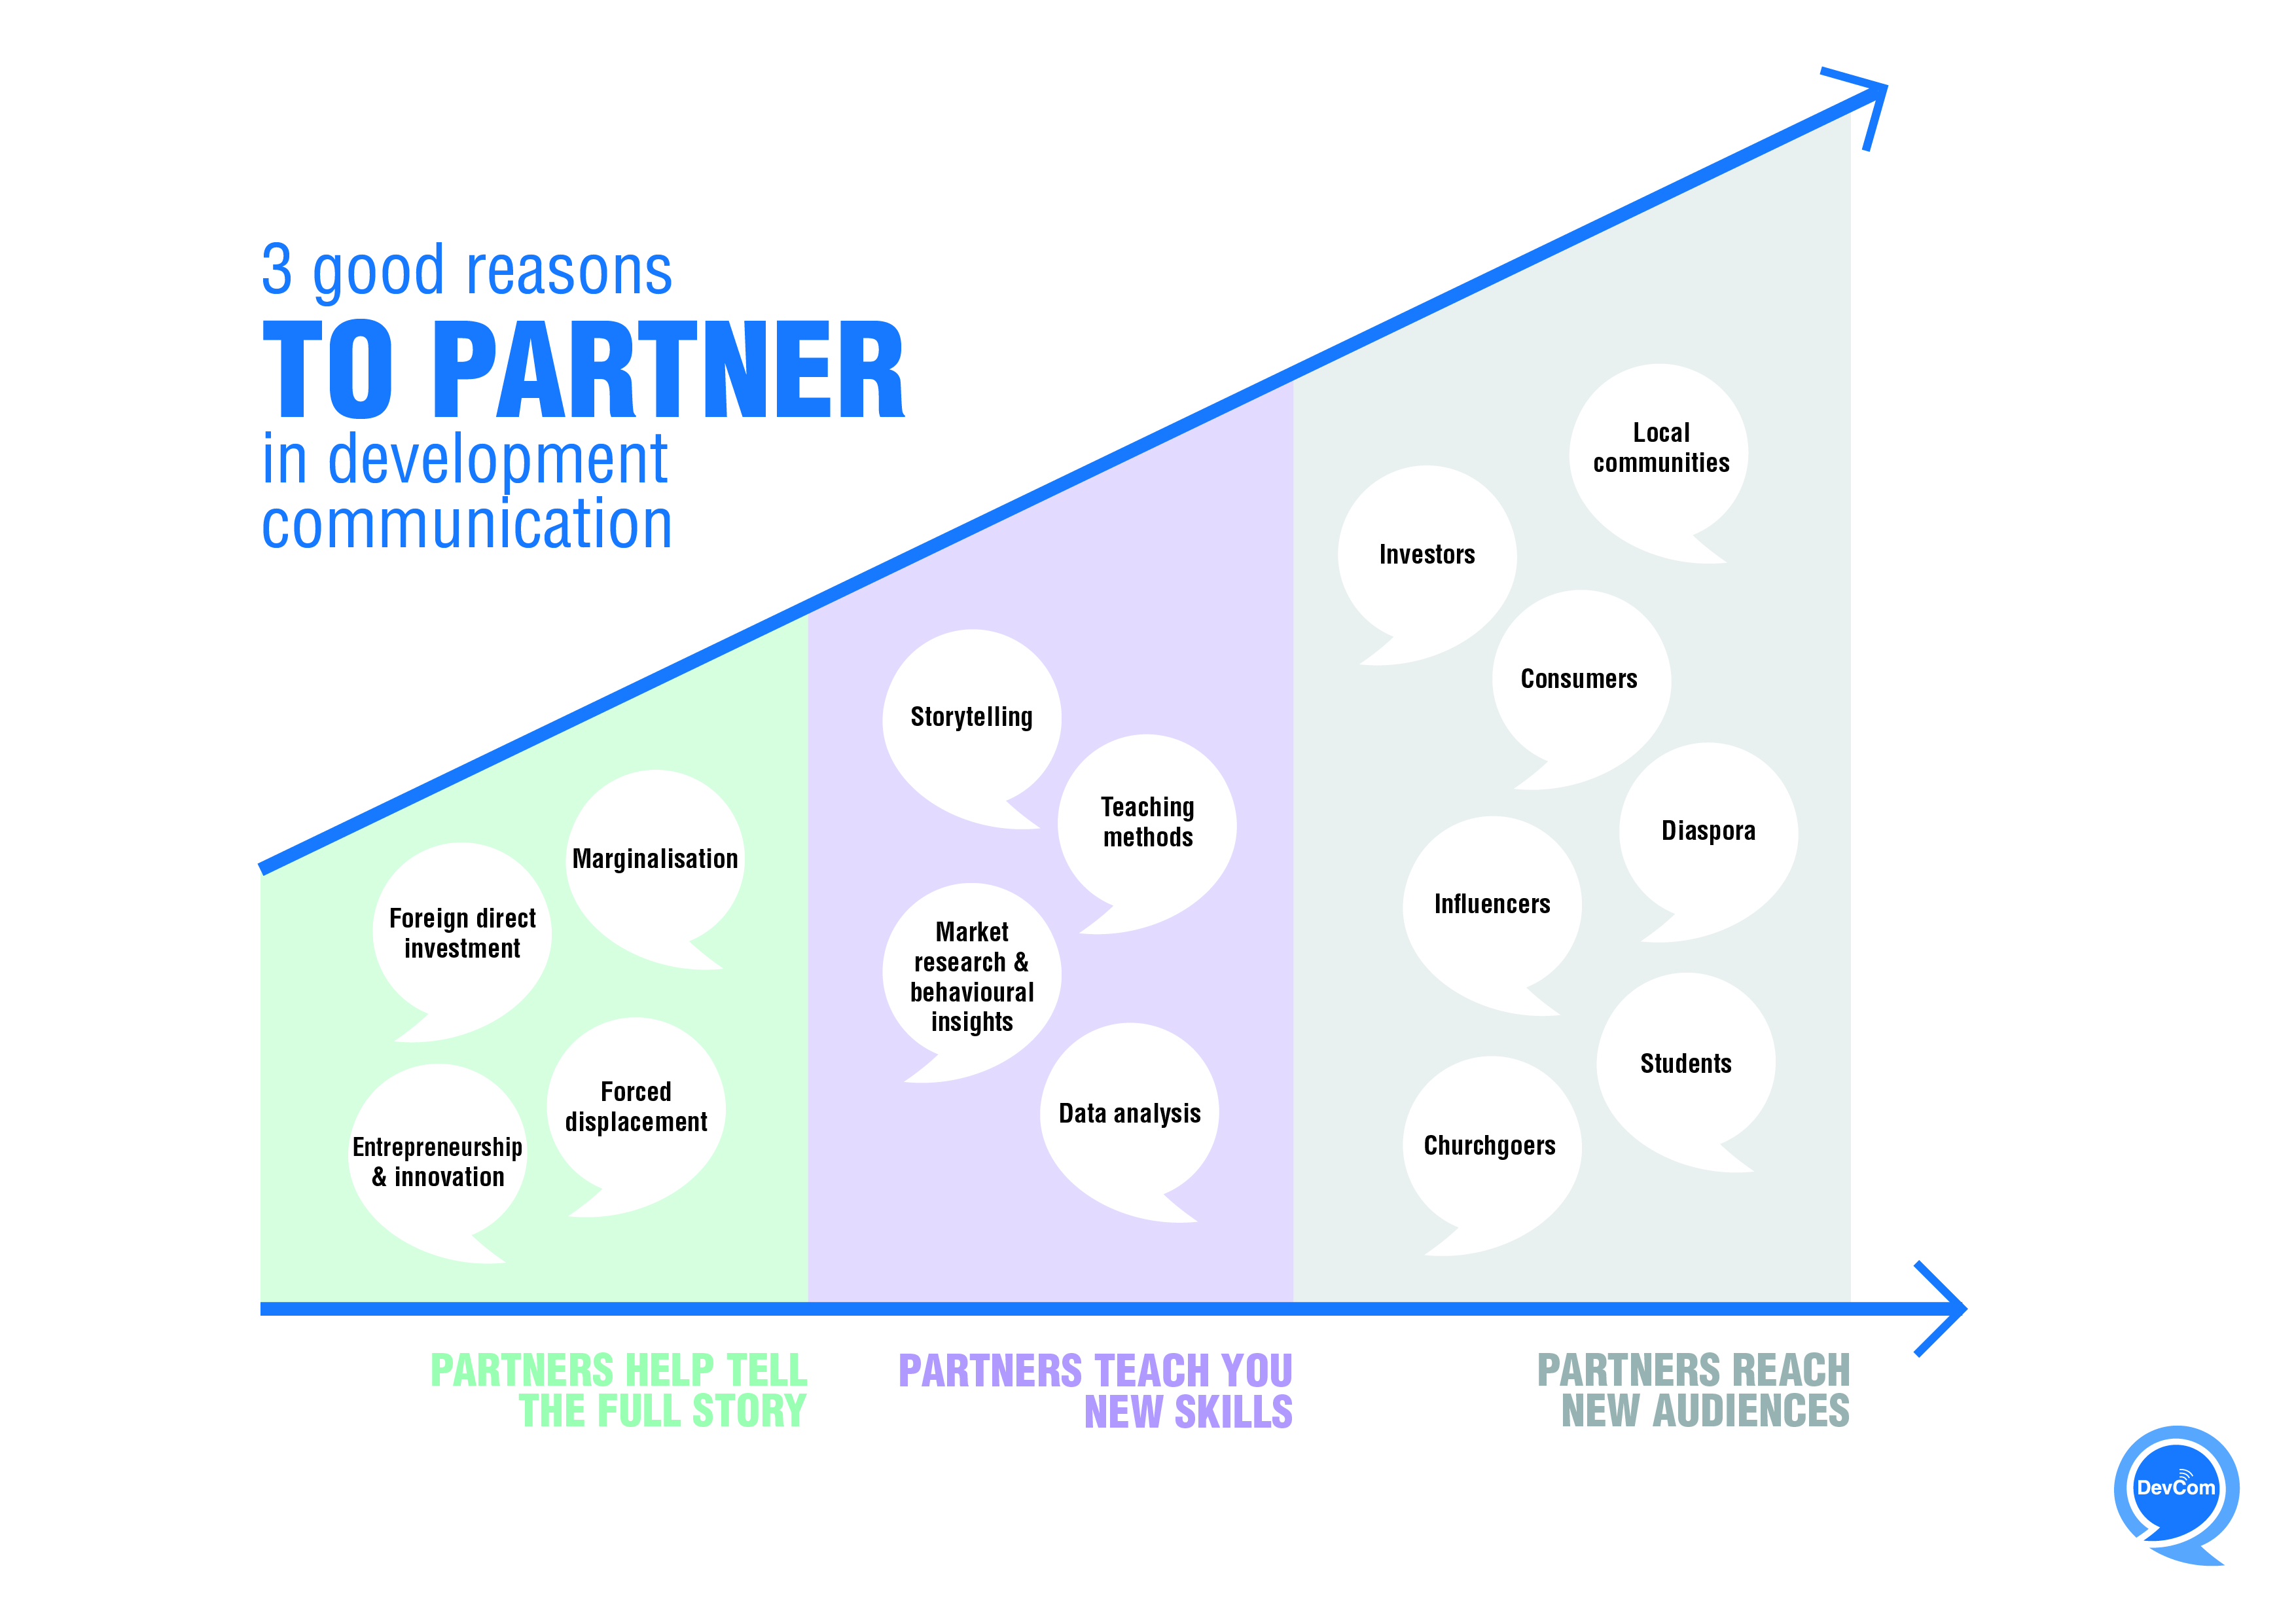 Infographic - 3 good reasons to partner in development communication